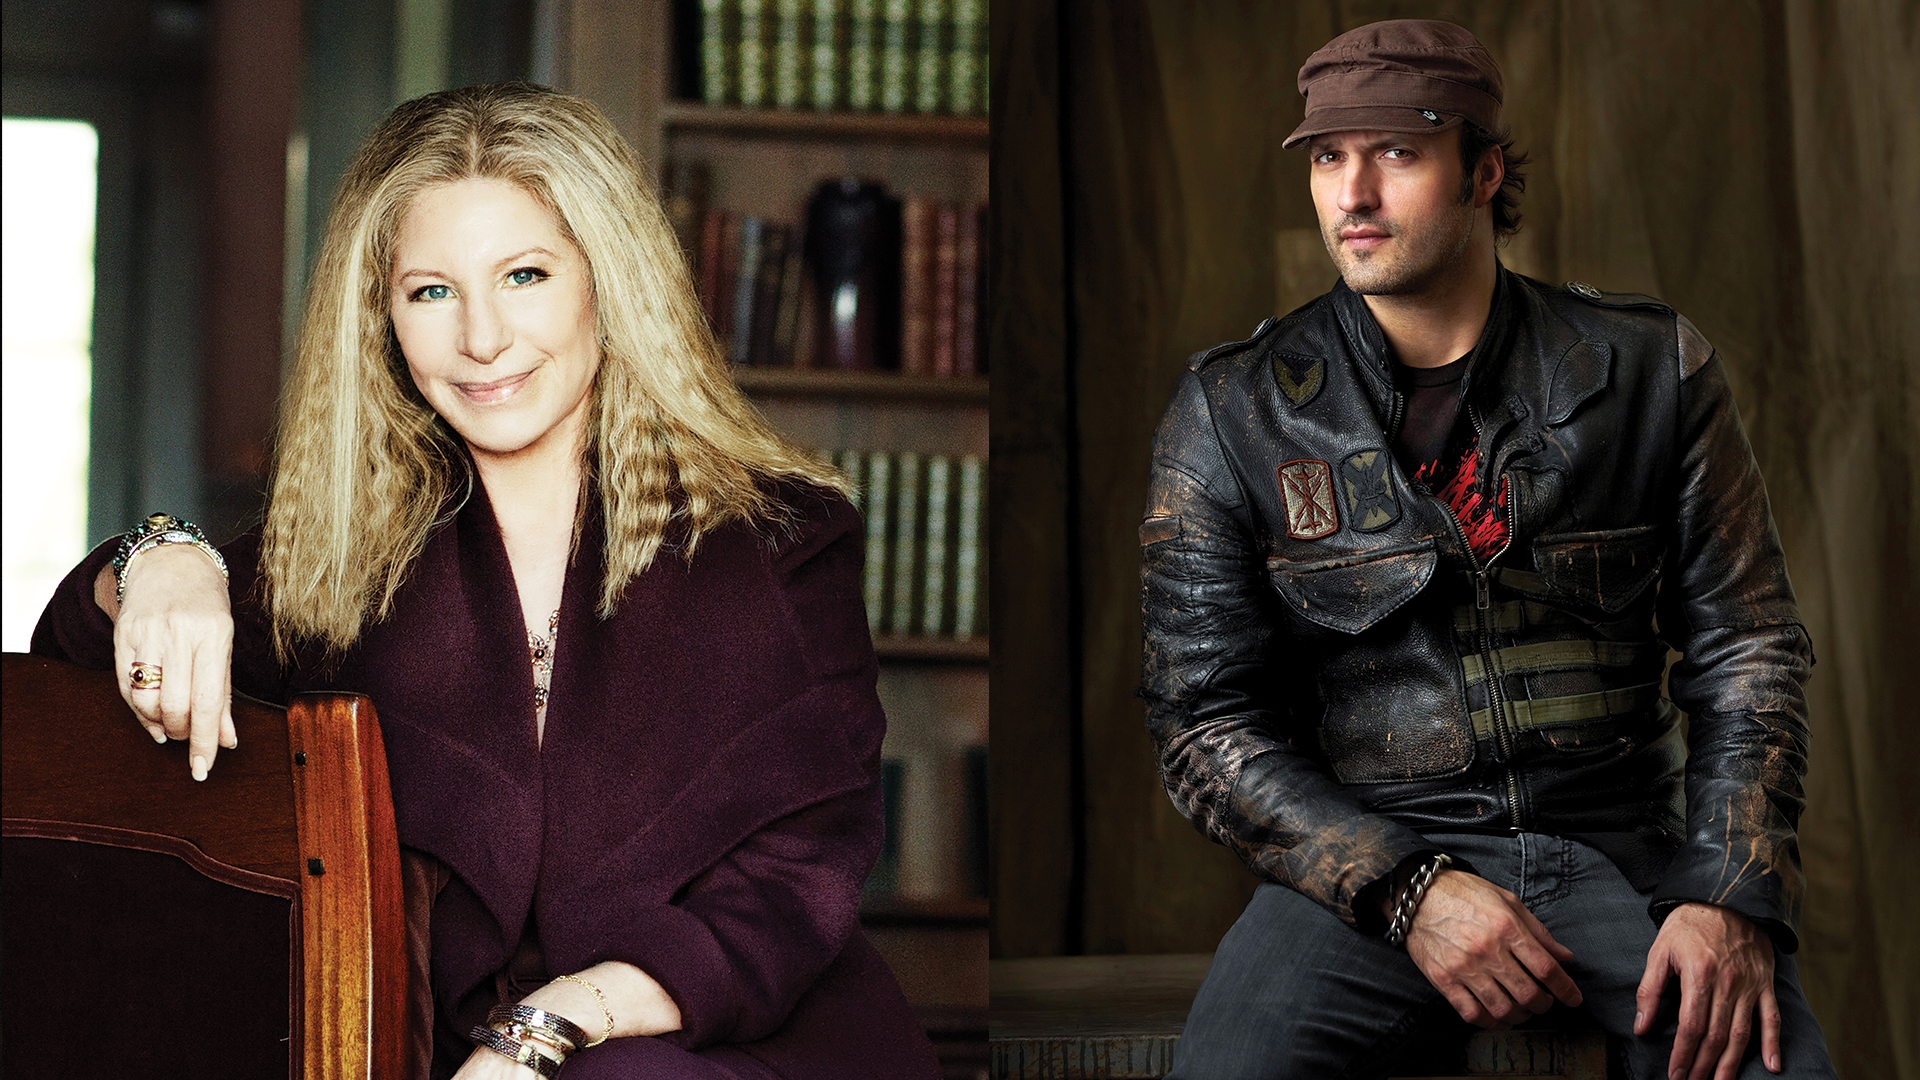 BARBRA STREISAND TALKS TO GORE DIRECTOR ROBERT RODRIGUEZ